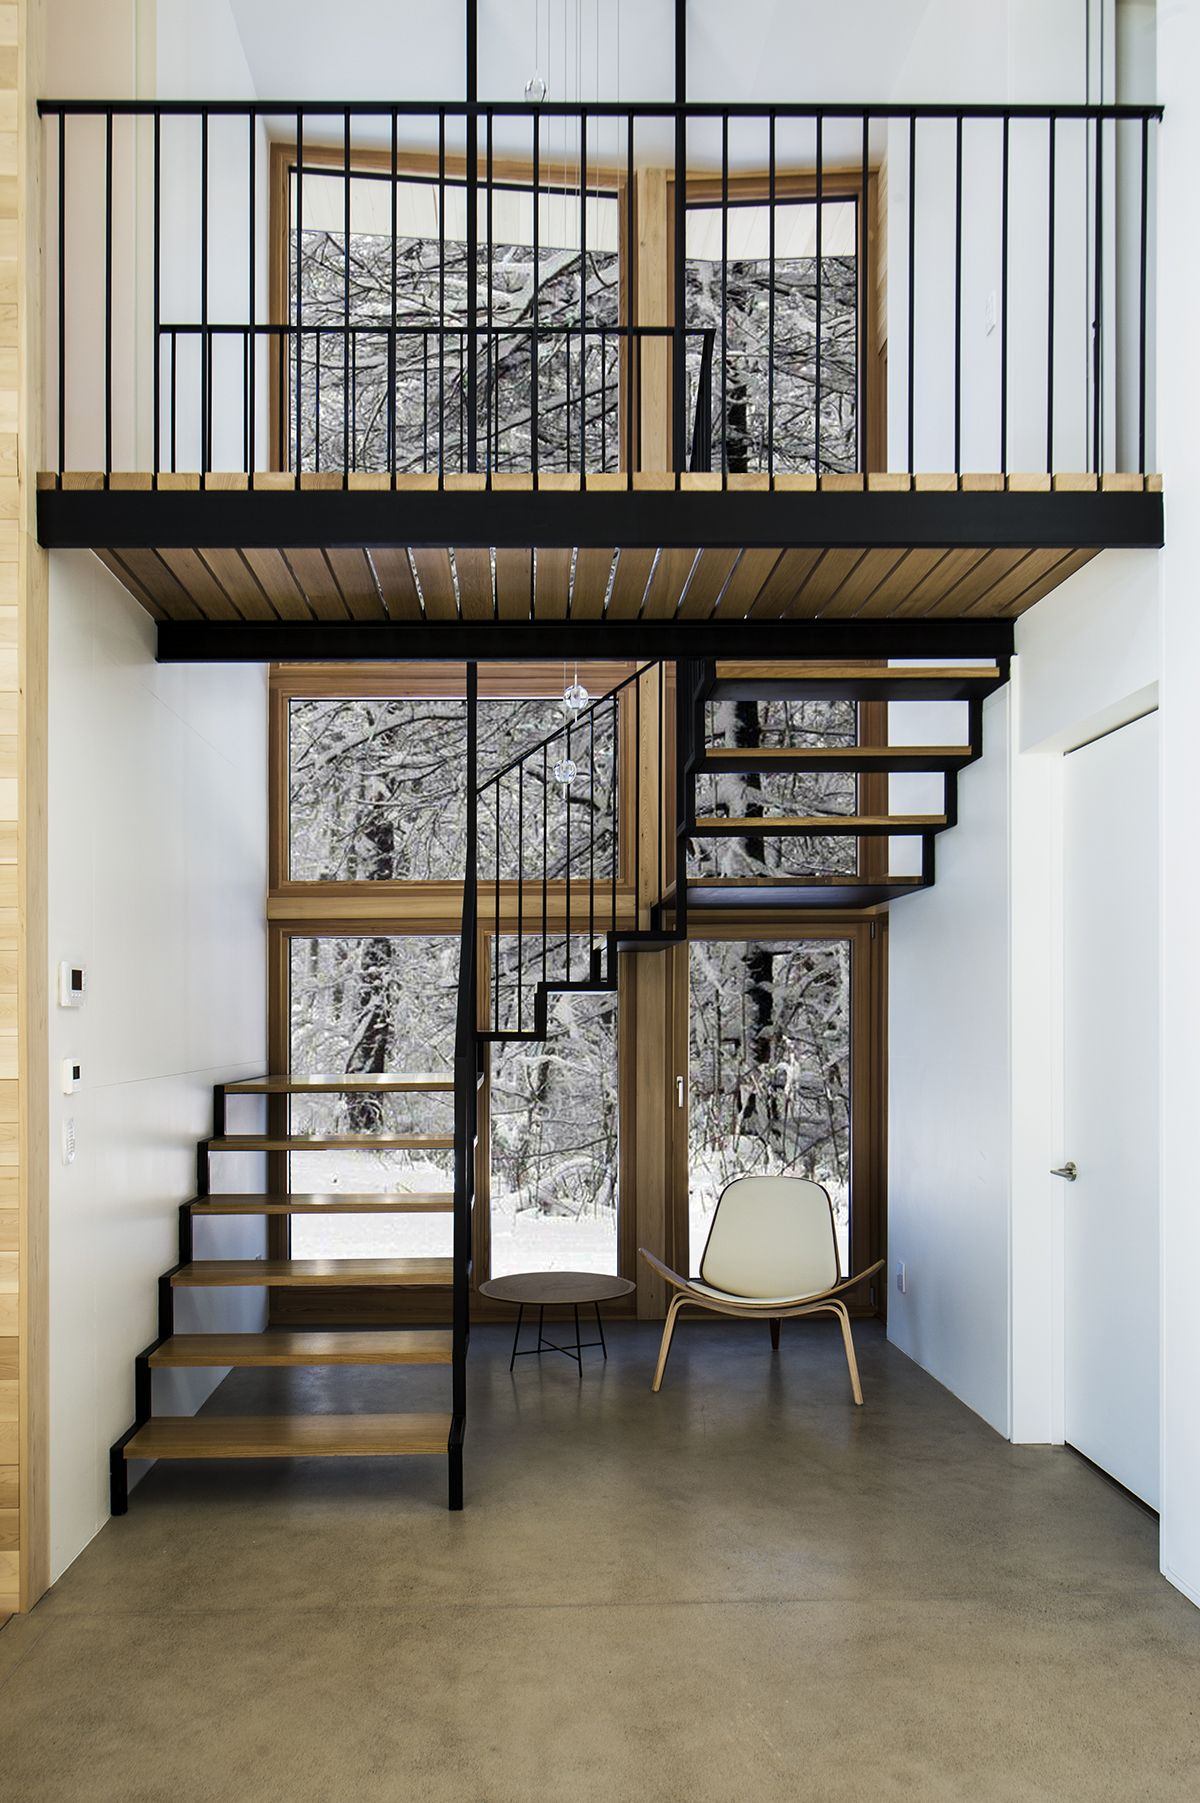 Elegant Mountain Contemporary Home In Colorado Radiates With Warmth: Yh2 — Yiacouvakis Hamelin, Architectes (With Images)